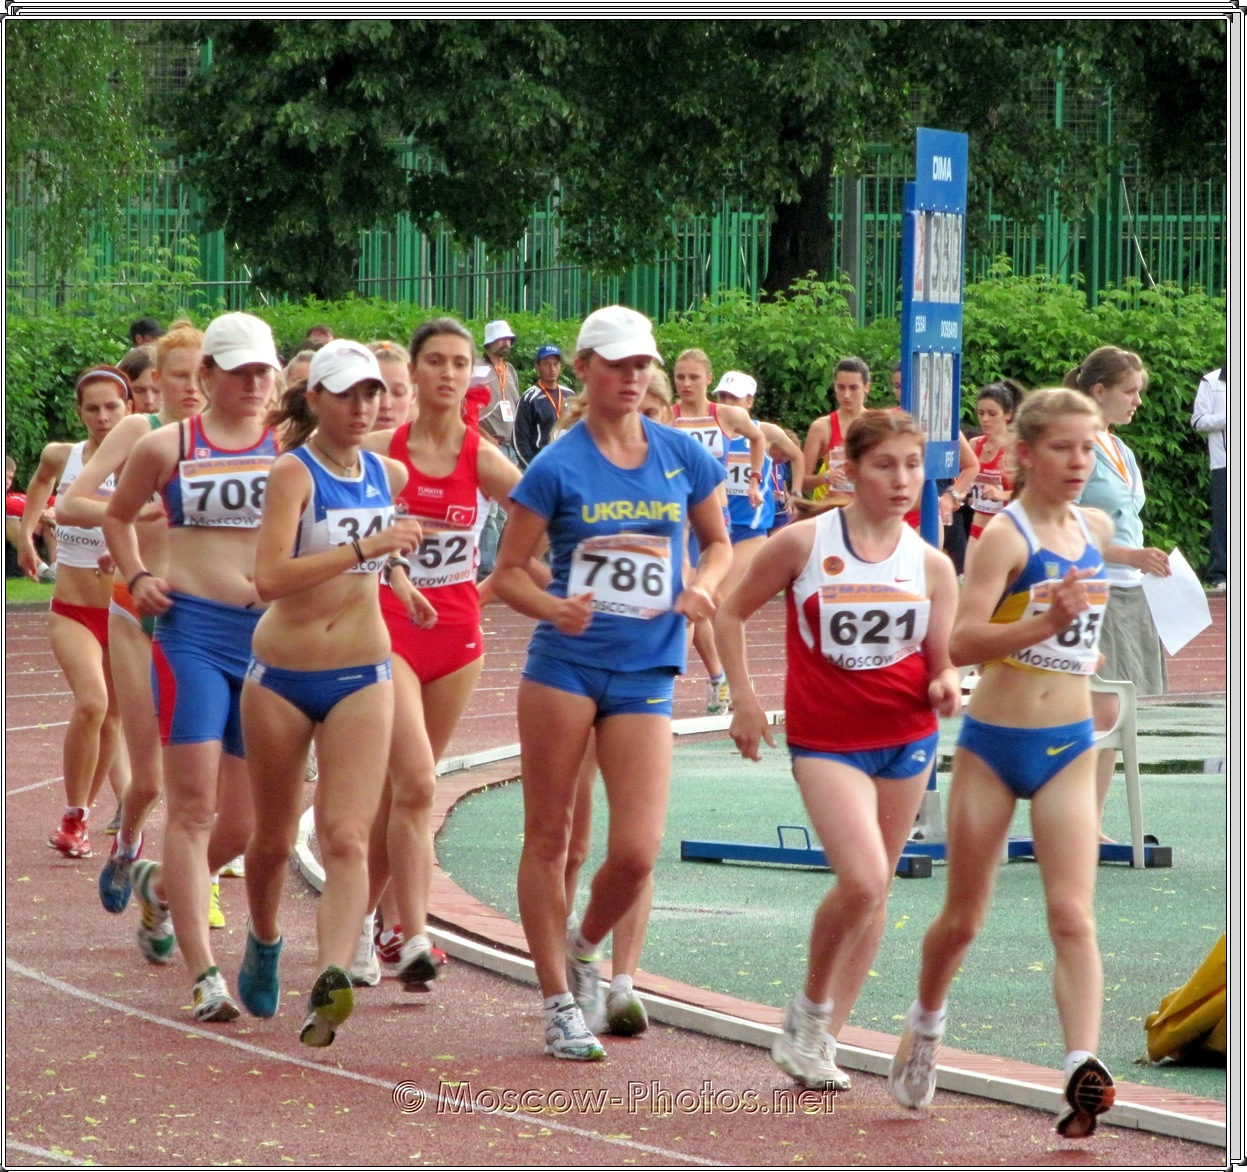 Girl's Sport Walking at European Youth Olympic Trials